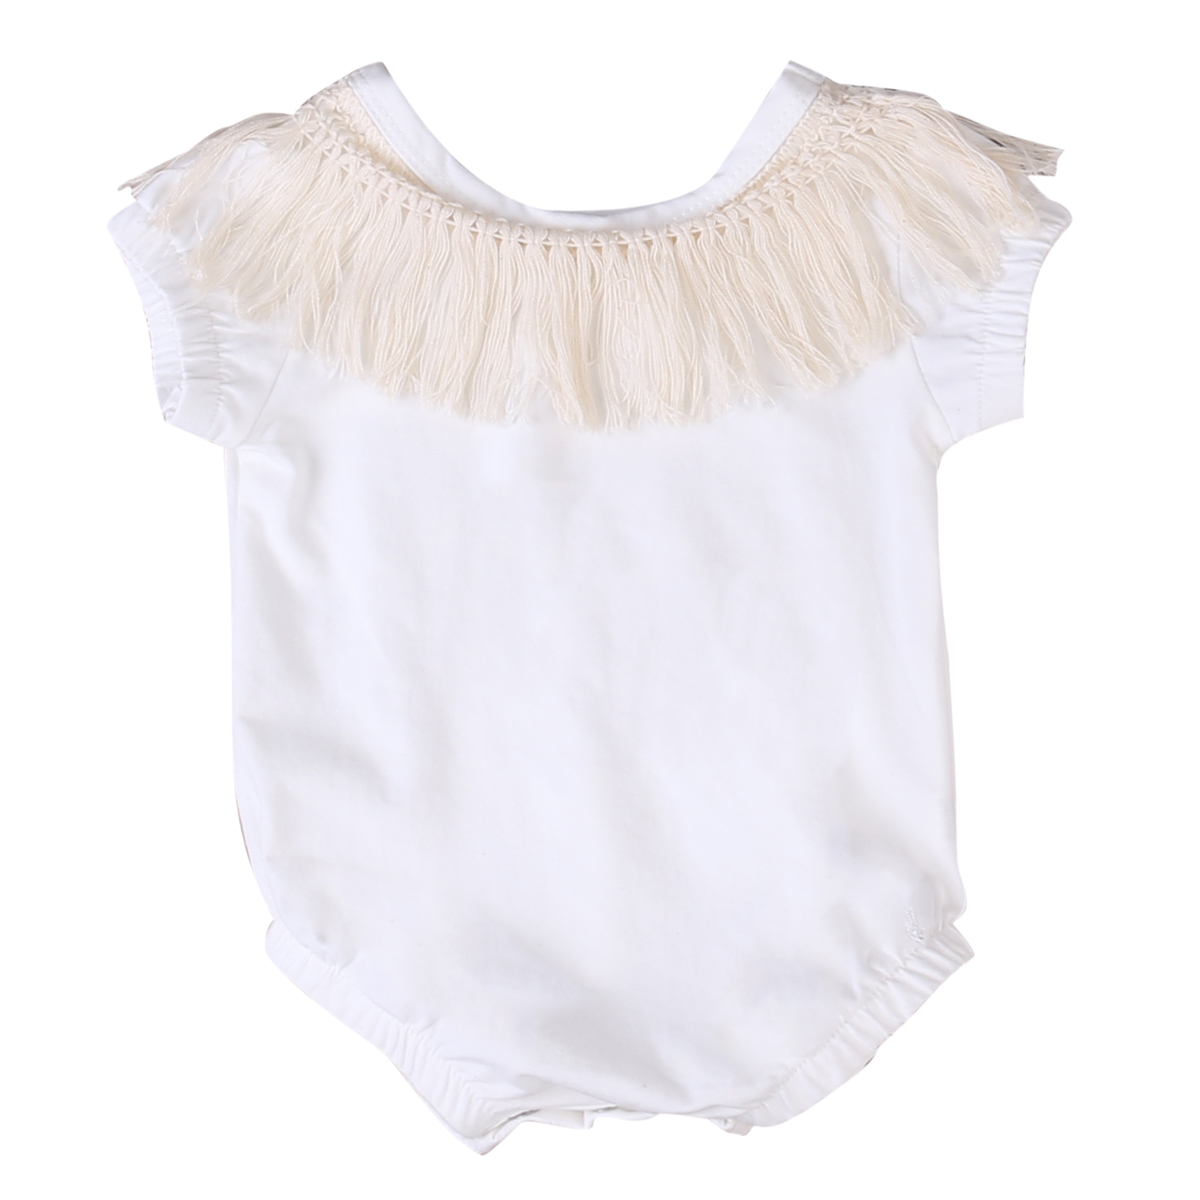 2017 Cute r Newborn Infant Baby Girls Cotton Tassel Rompe Short Sleeve Romper Jumpsuit Outfits Clothes